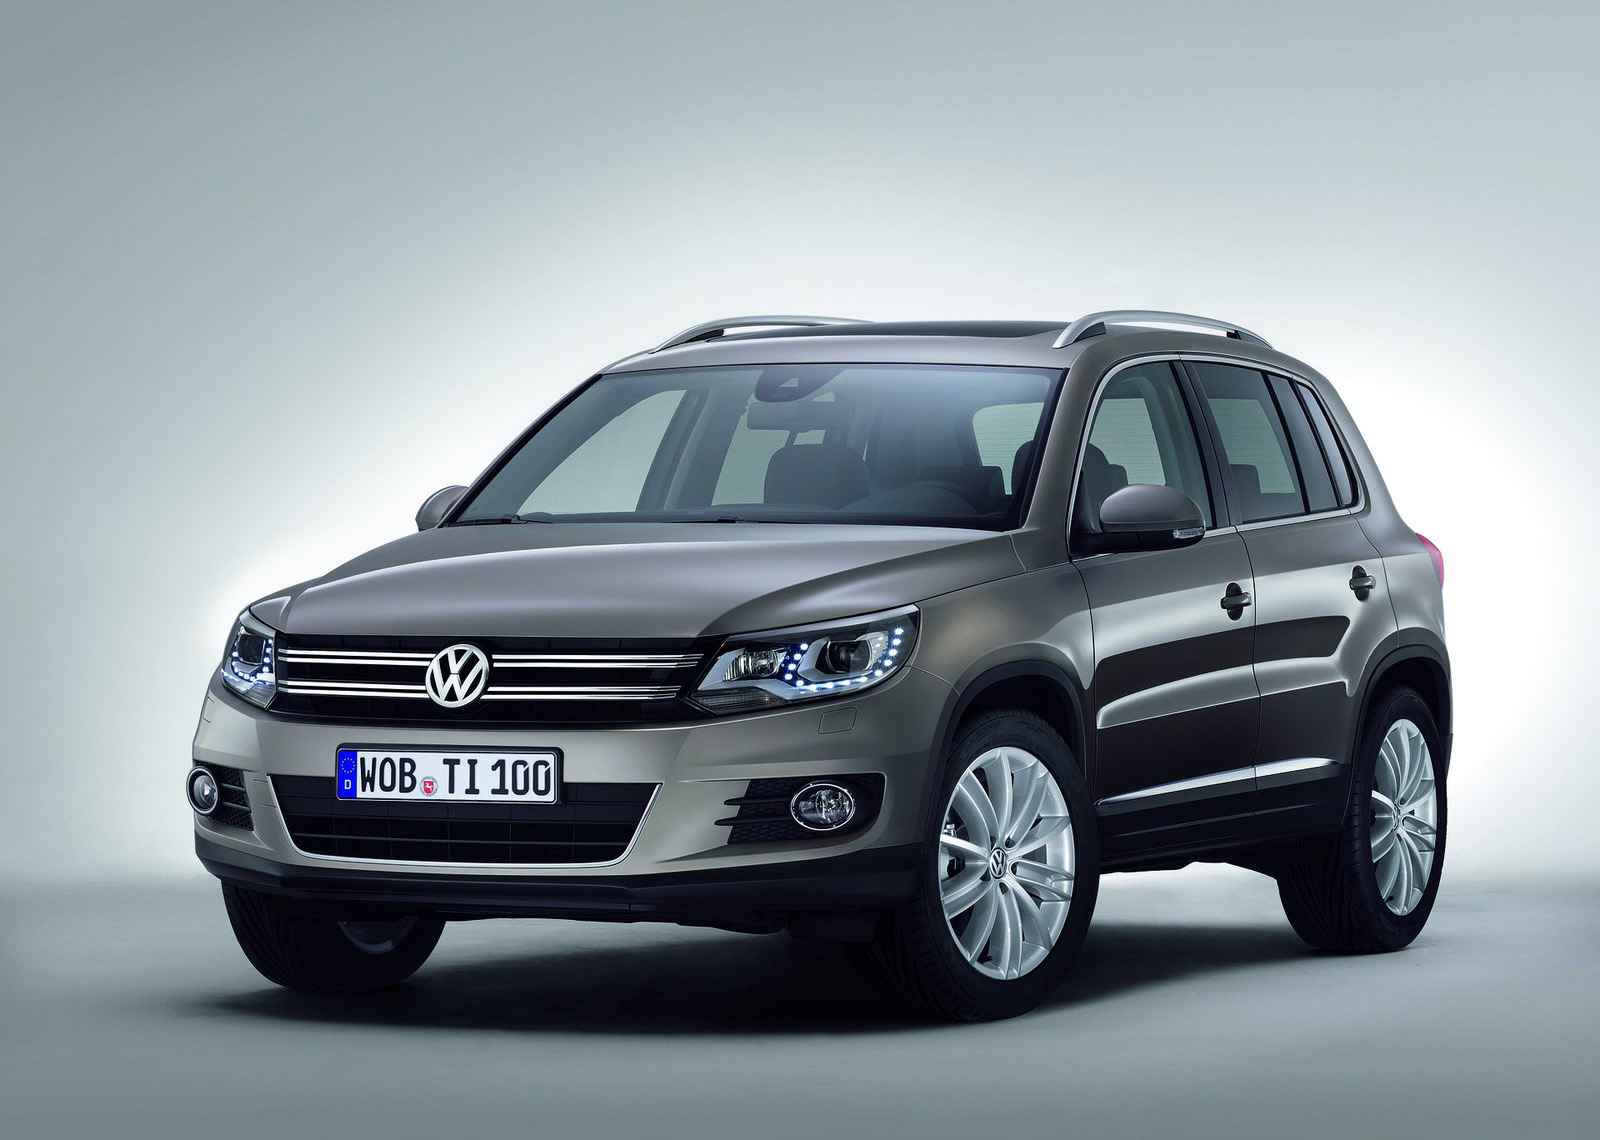 volkswagen tiguan 2015 g ncel fiyat listesi uygun ta t. Black Bedroom Furniture Sets. Home Design Ideas